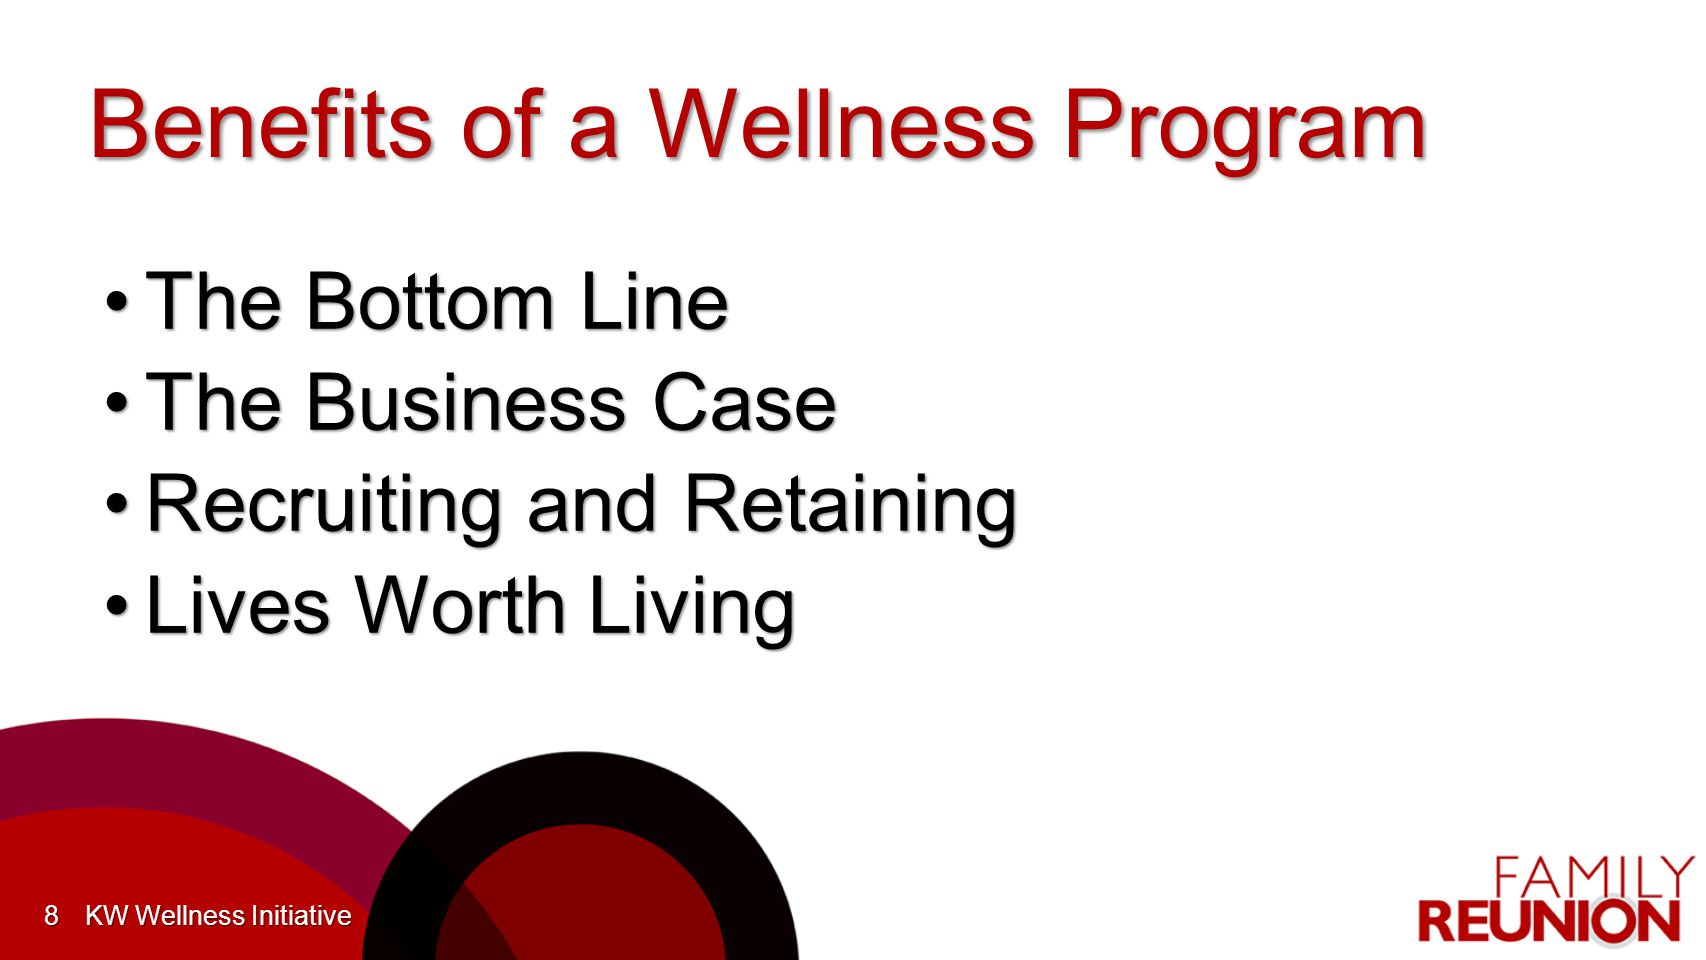 Benefits of a Wellness Program The Bottom LineThe Bottom Line The Business CaseThe Business Case Recruiting and RetainingRecruiting and Retaining Lives Worth LivingLives Worth Living KW Wellness Initiative8